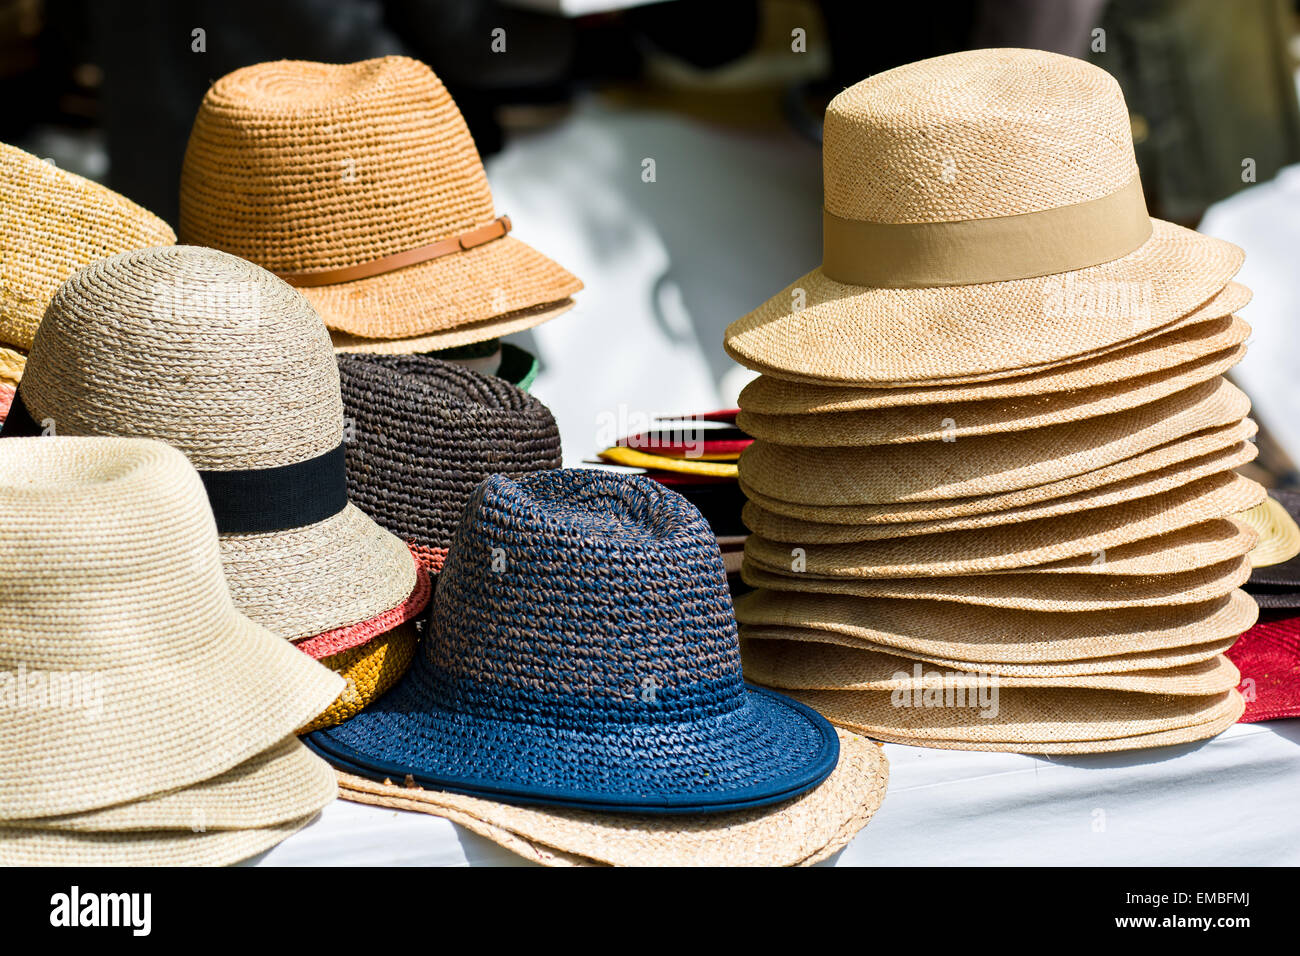 a38fc9e196b09e Pile Of Assorted Hats For Sale At Outdoor Market · Andreas Berthold / Alamy  Stock Photo